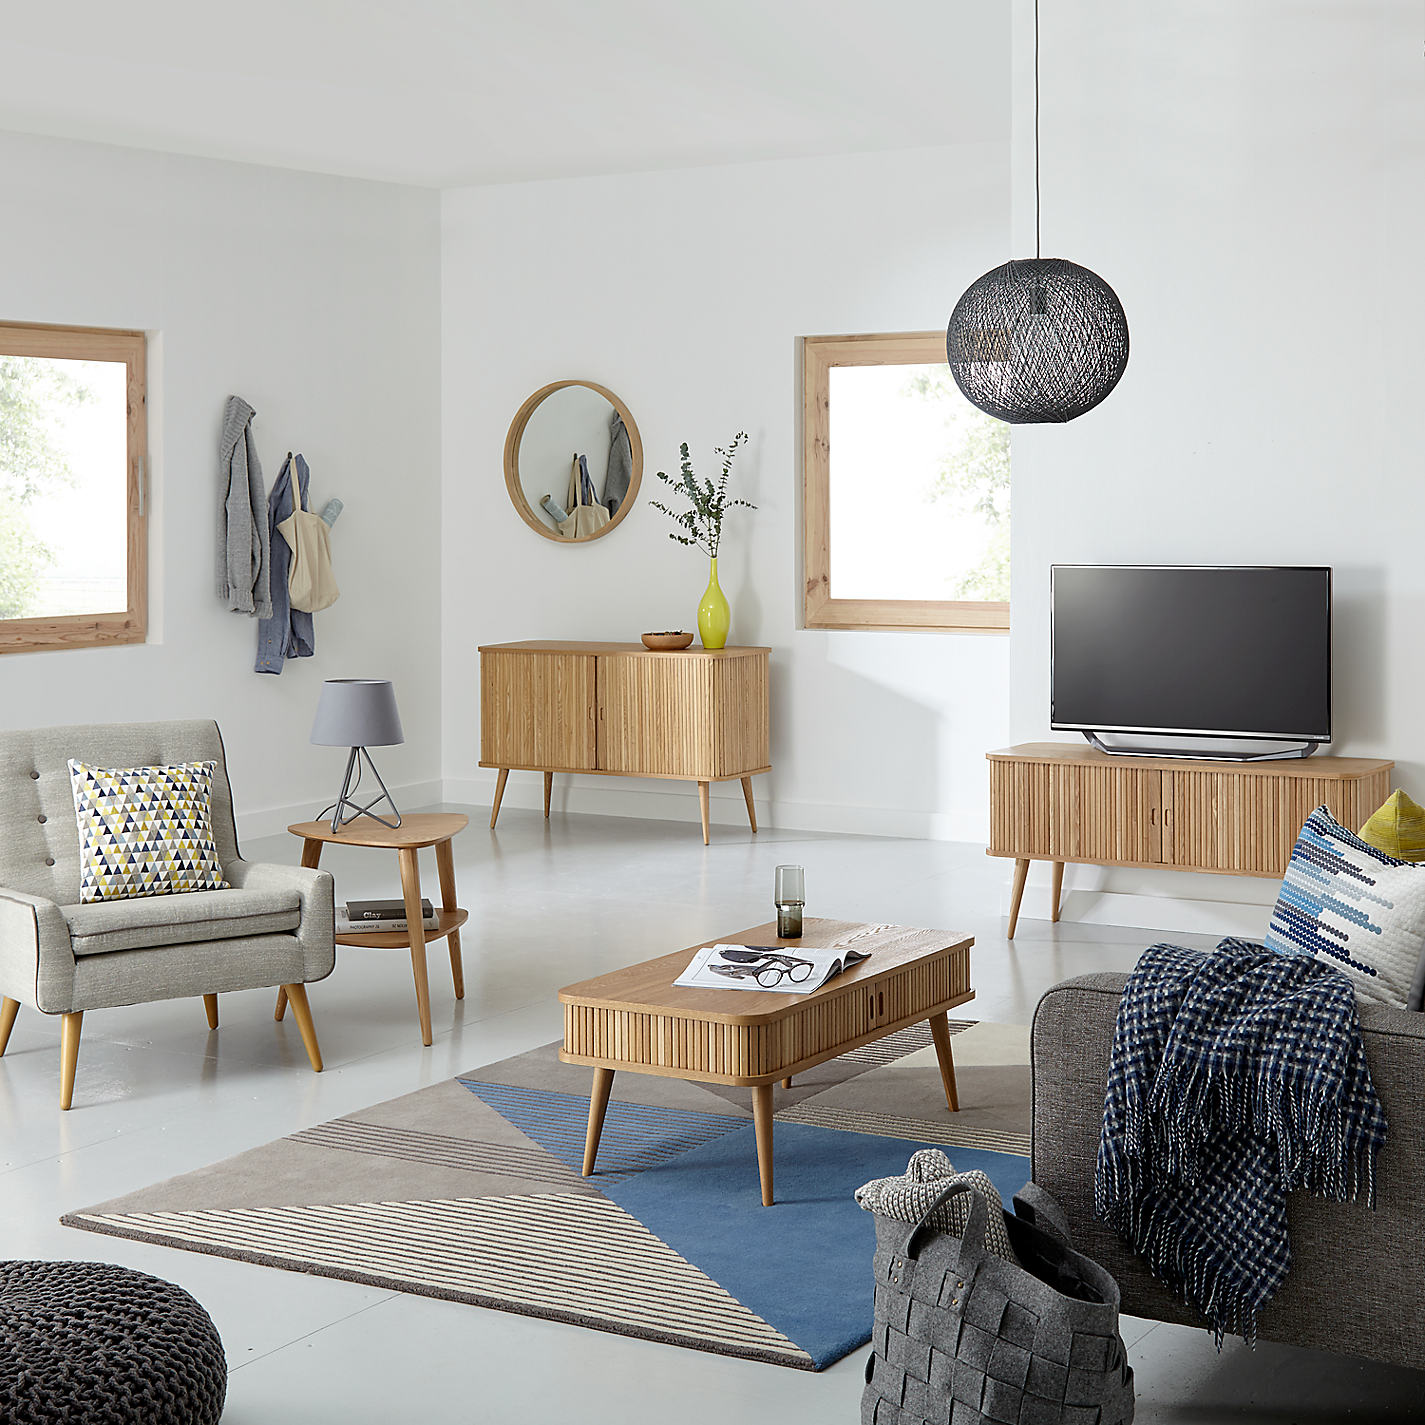 Living room furniture john lewis modern furniture at john for Living room ideas john lewis